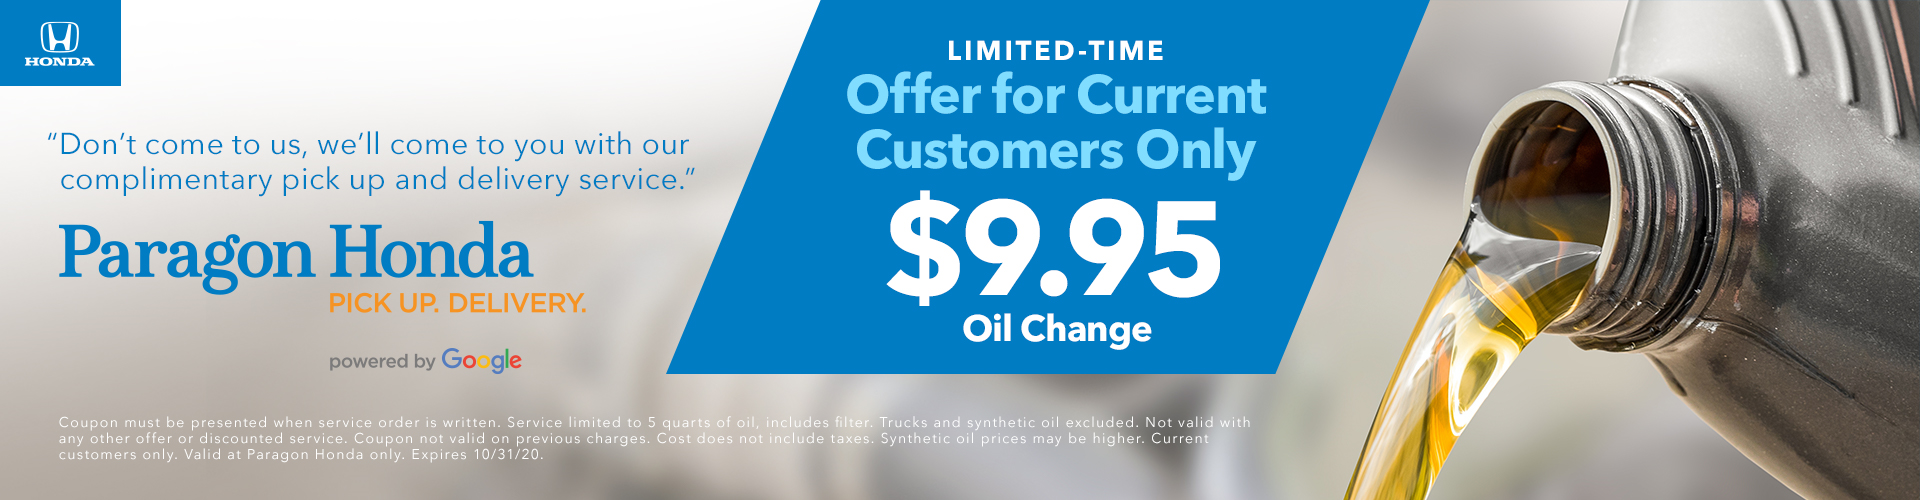 Exclusive Oil Change Offer